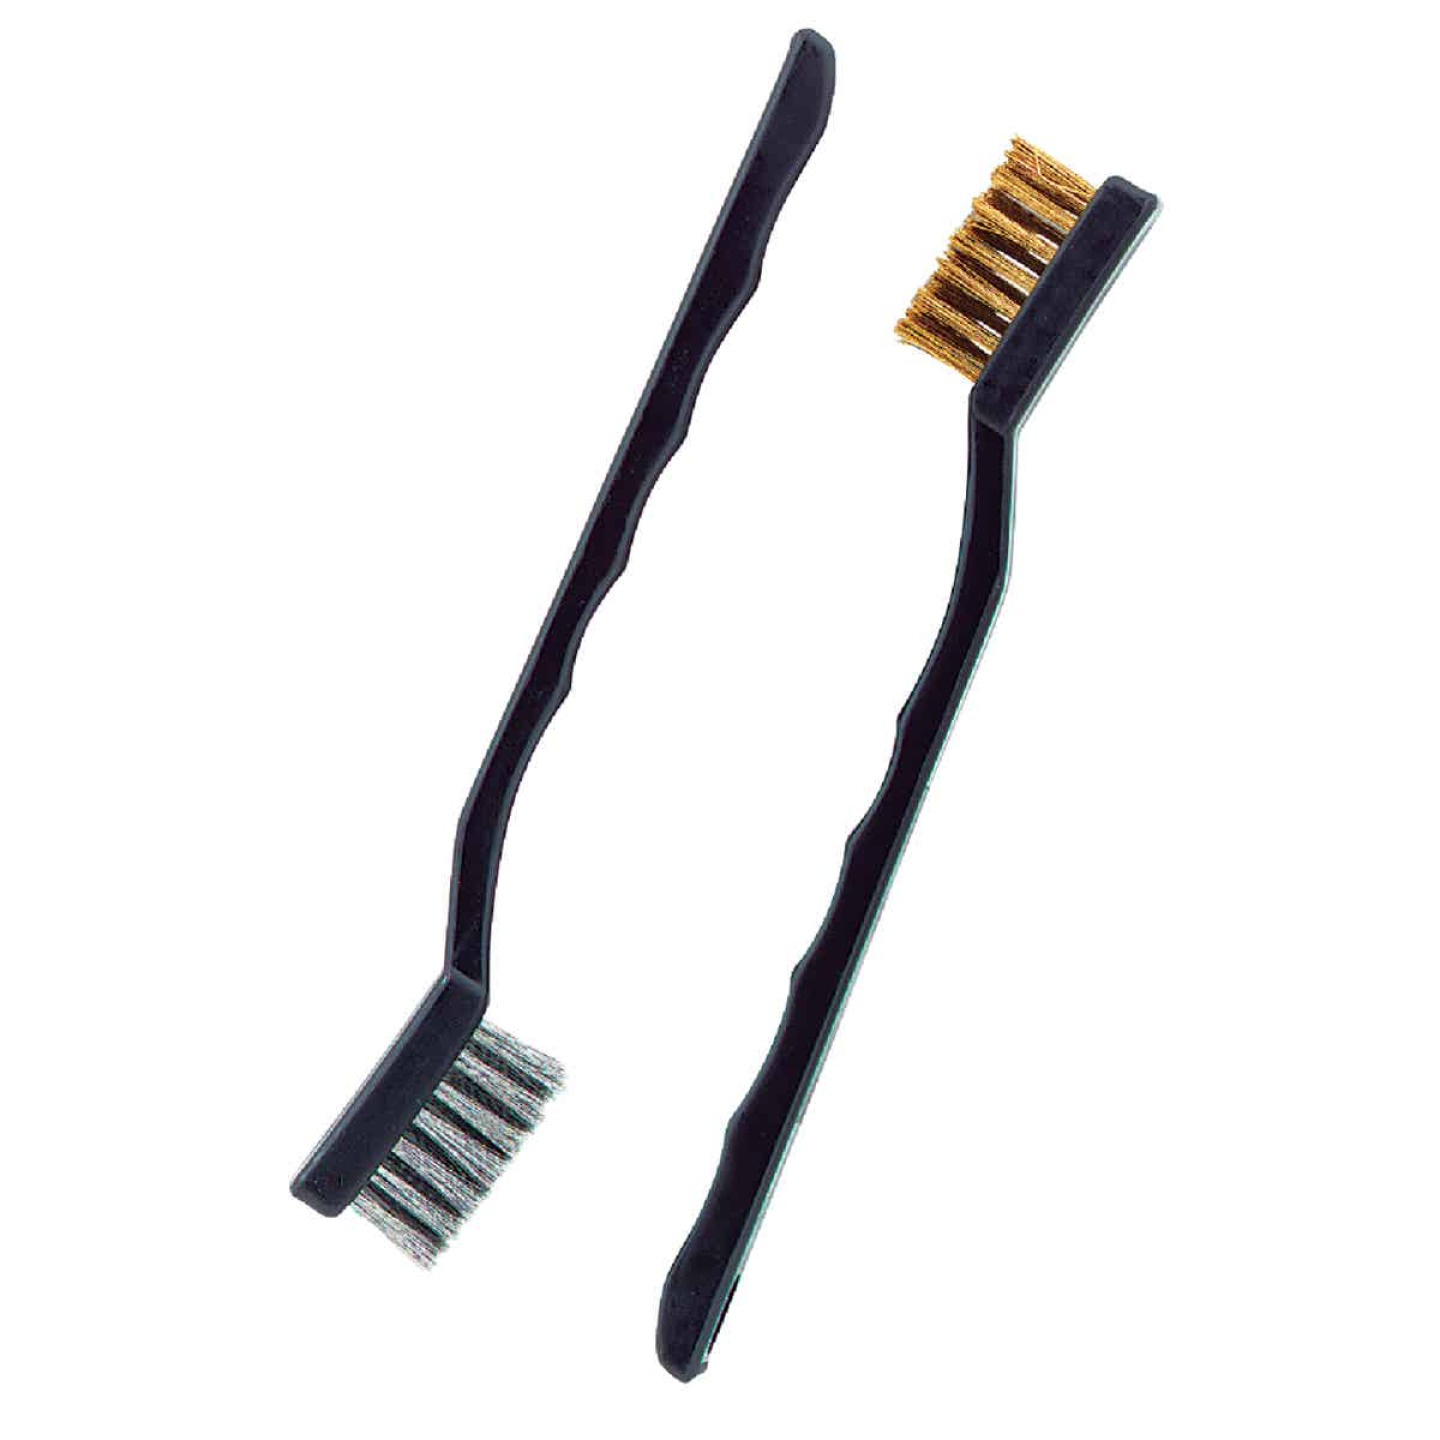 Do it Best Brass & Stainless Steel Bristle Utility Brushes (2-Pack) Image 1